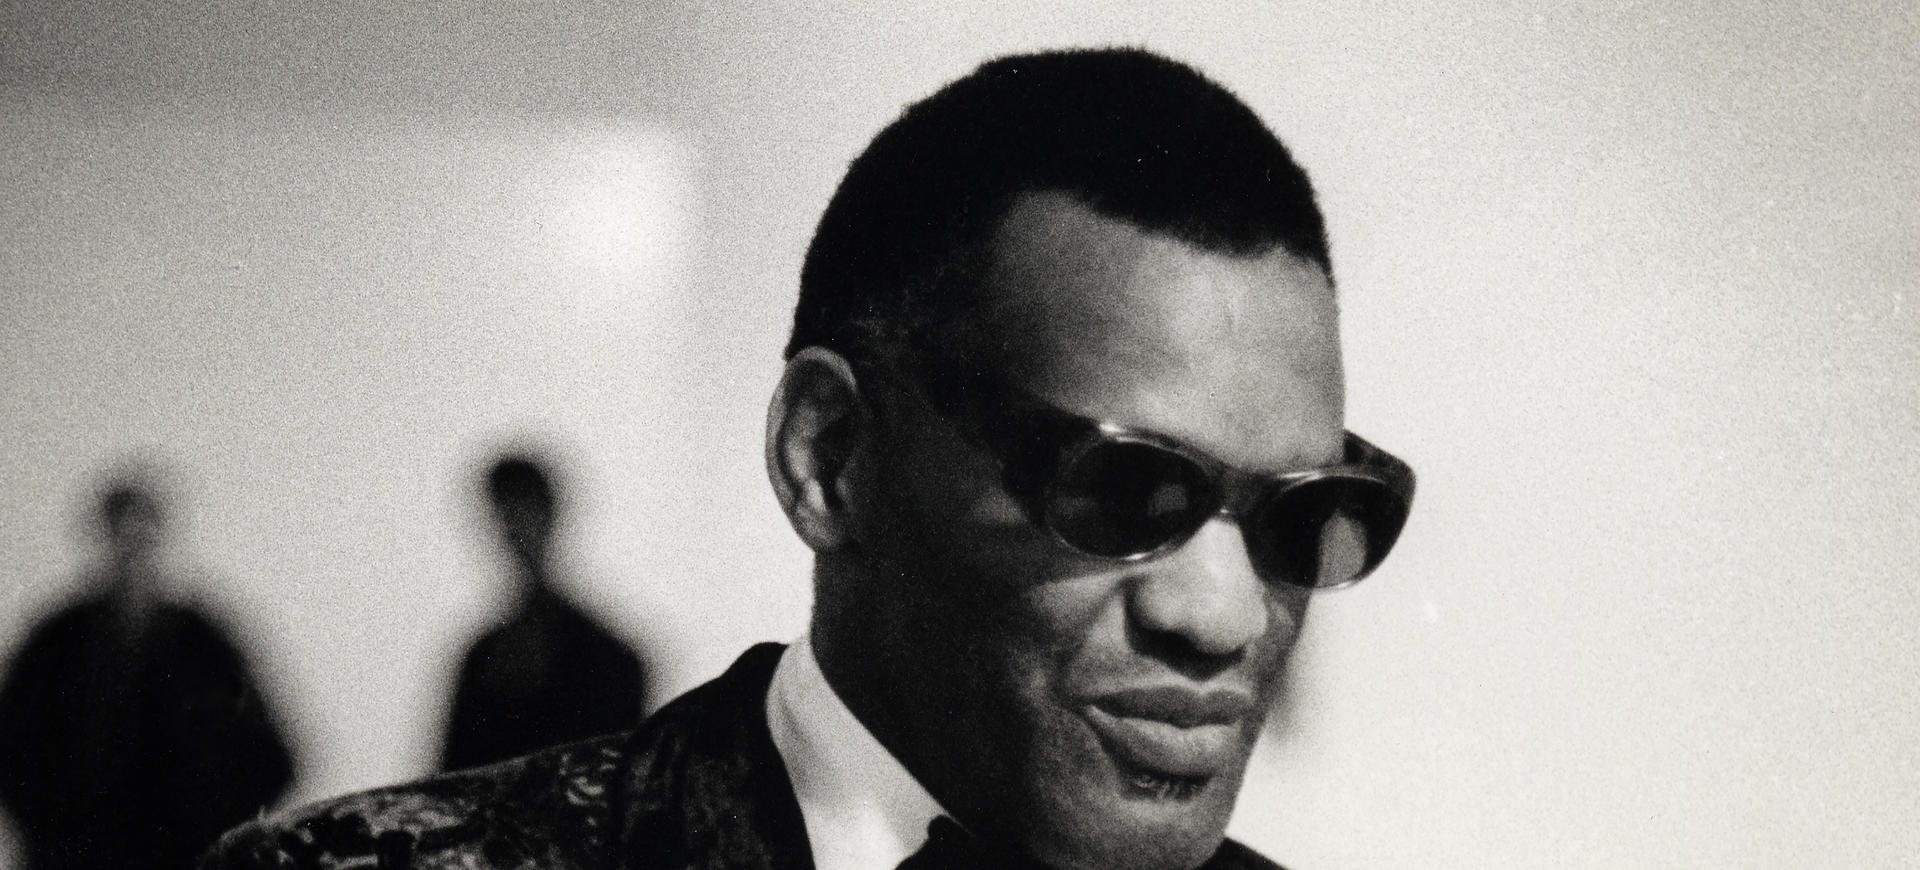 Ray Charles backstage San Francisco 12/5/71  sheet 905 frame 25a